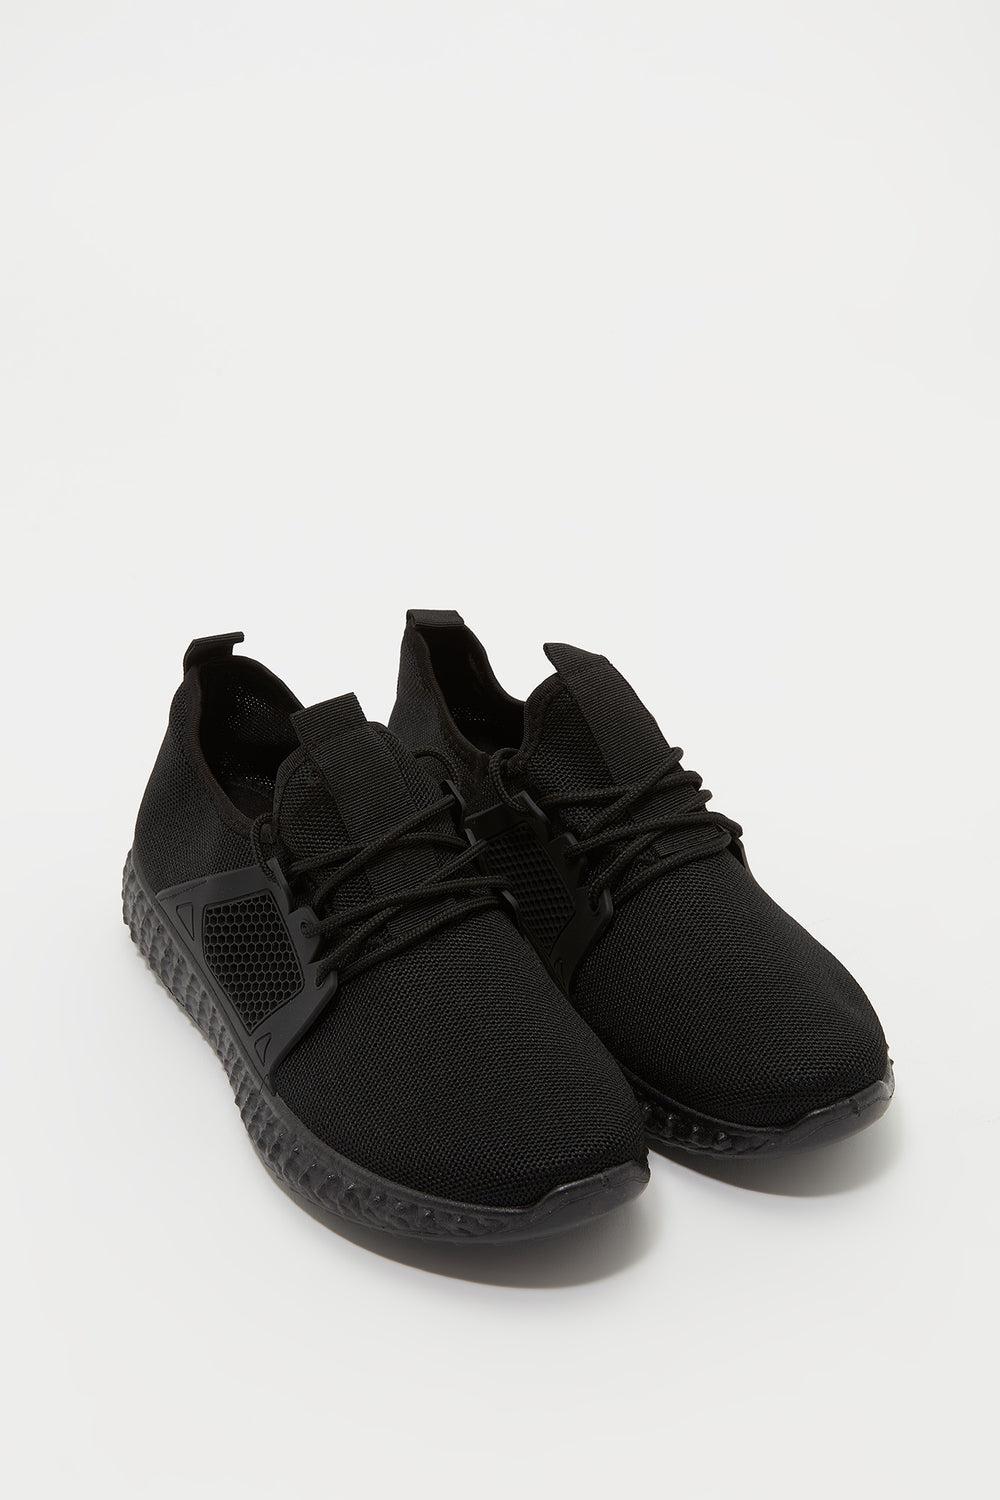 Knit Lace-Up Active Sneaker Black